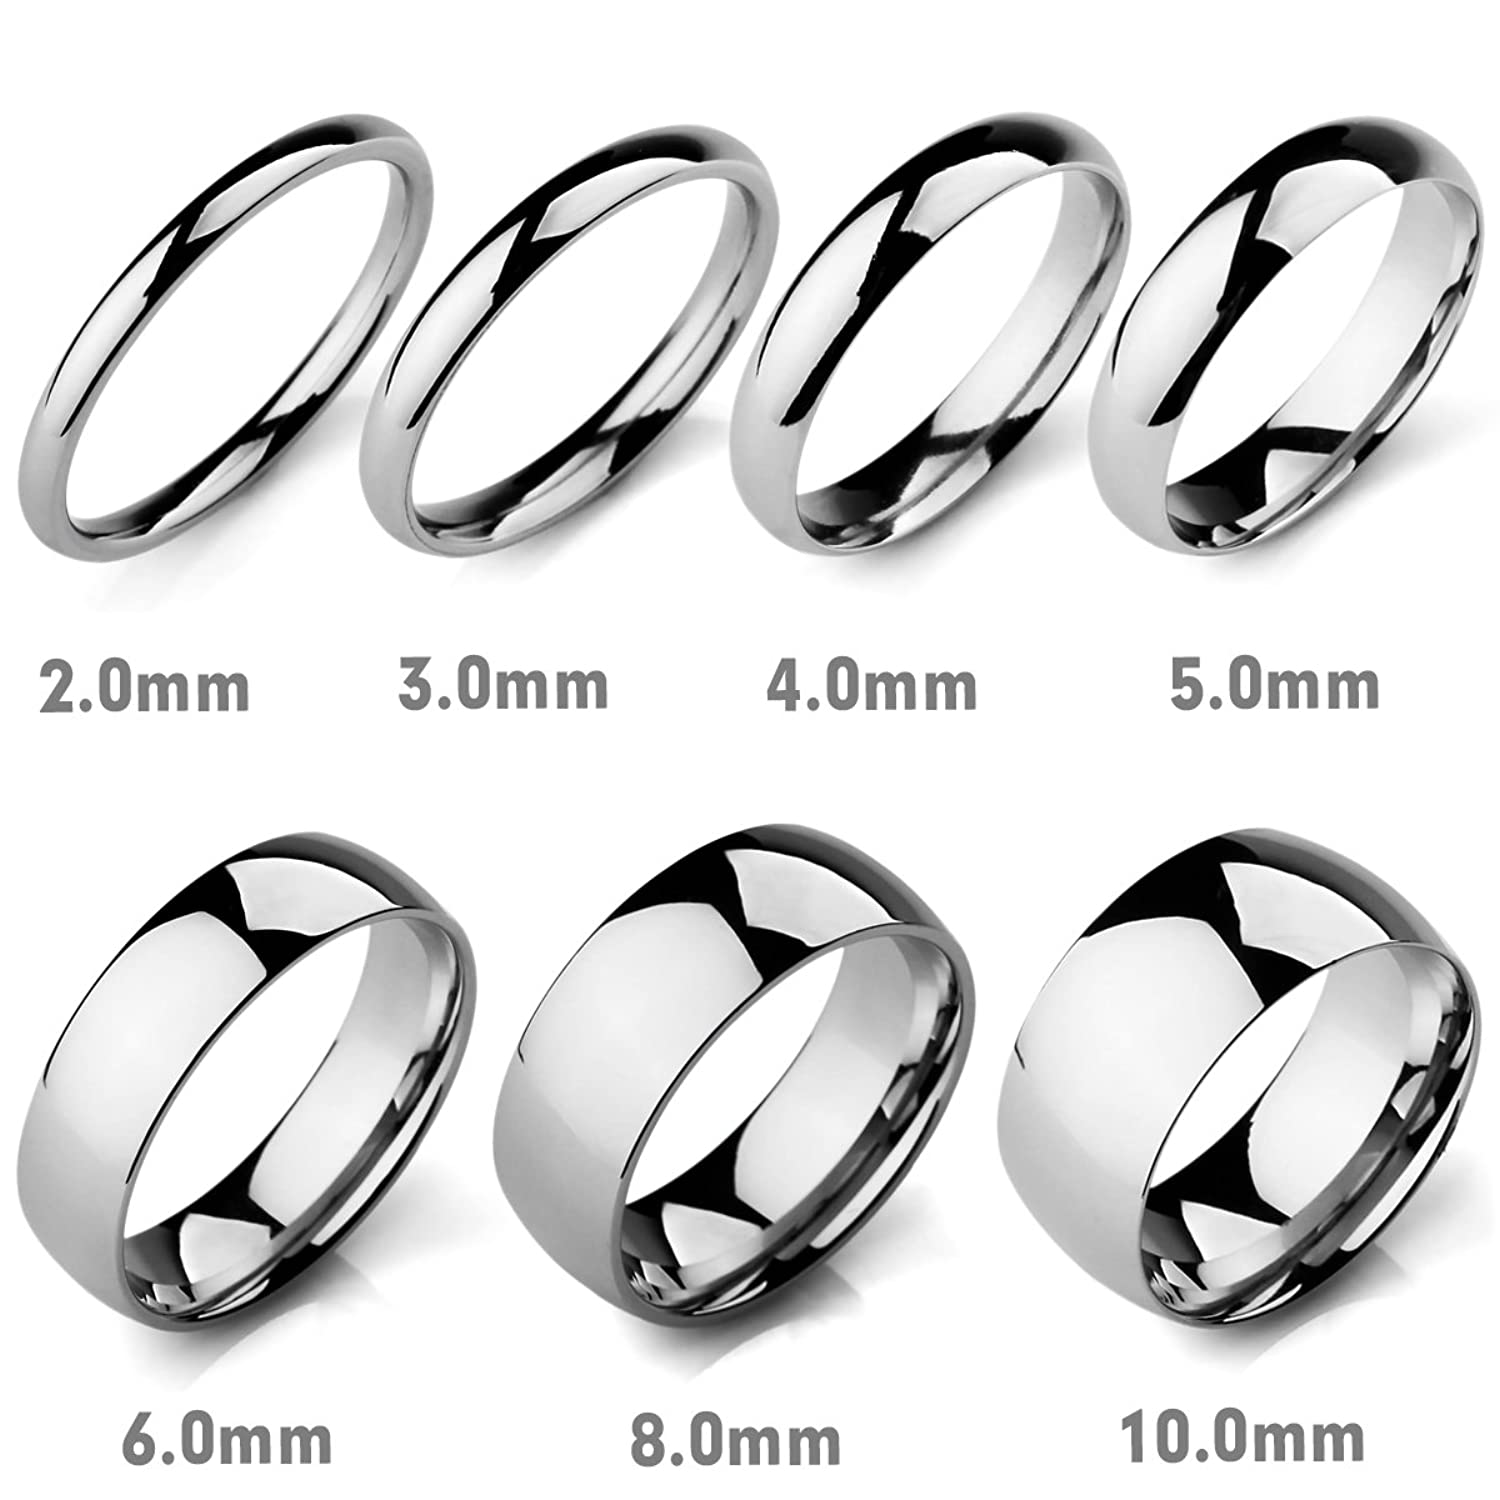 MunkiMix Wide 2mm 10mm Stainless Steel Band Ring Silver Tone